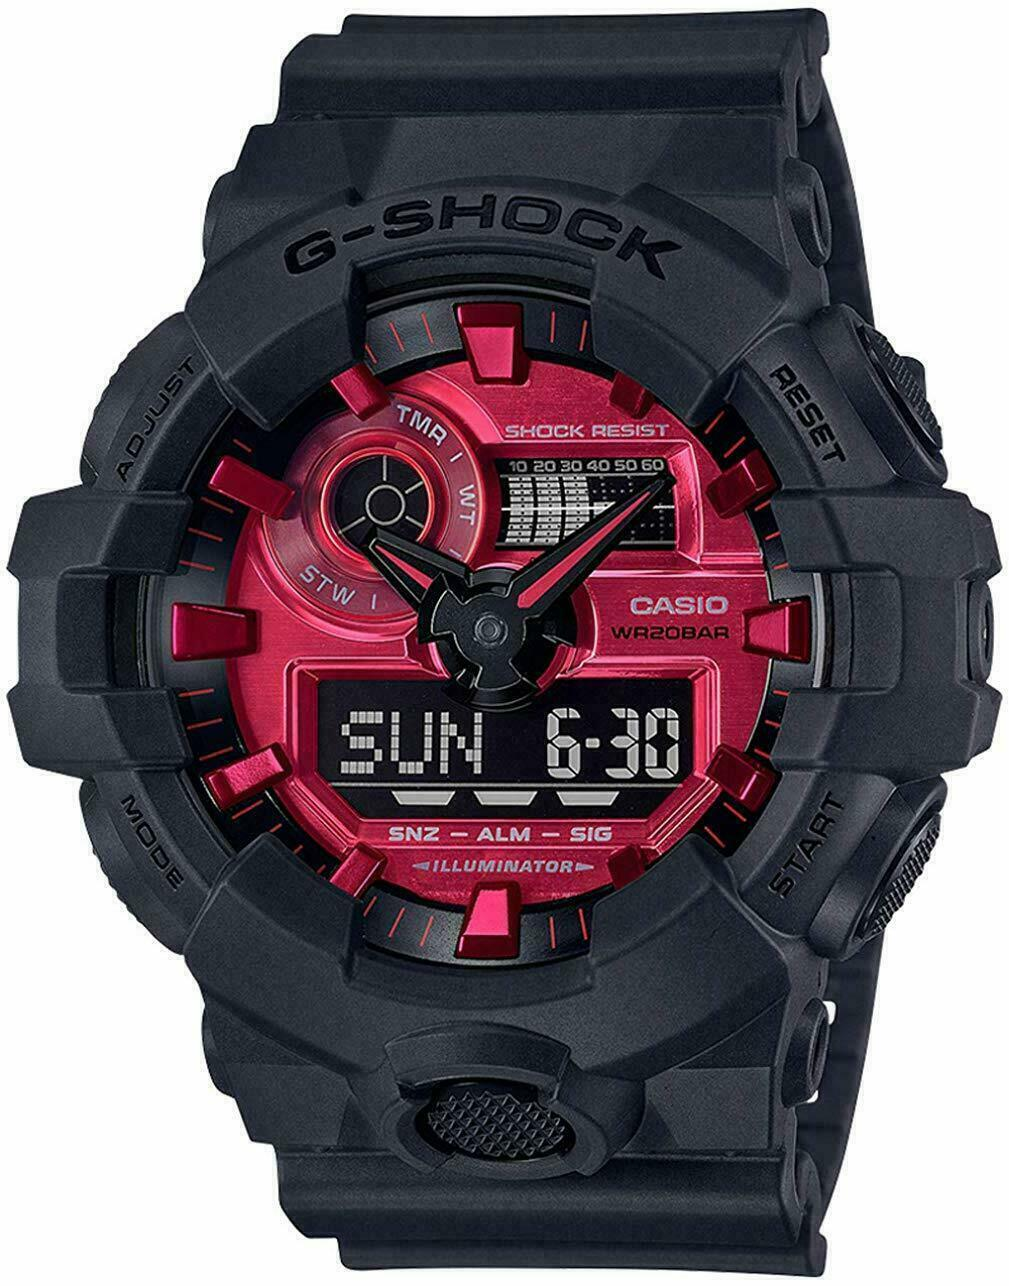 Primary image for Casio G-SHOCK GA700AR-1A Red Wristwatch for Men